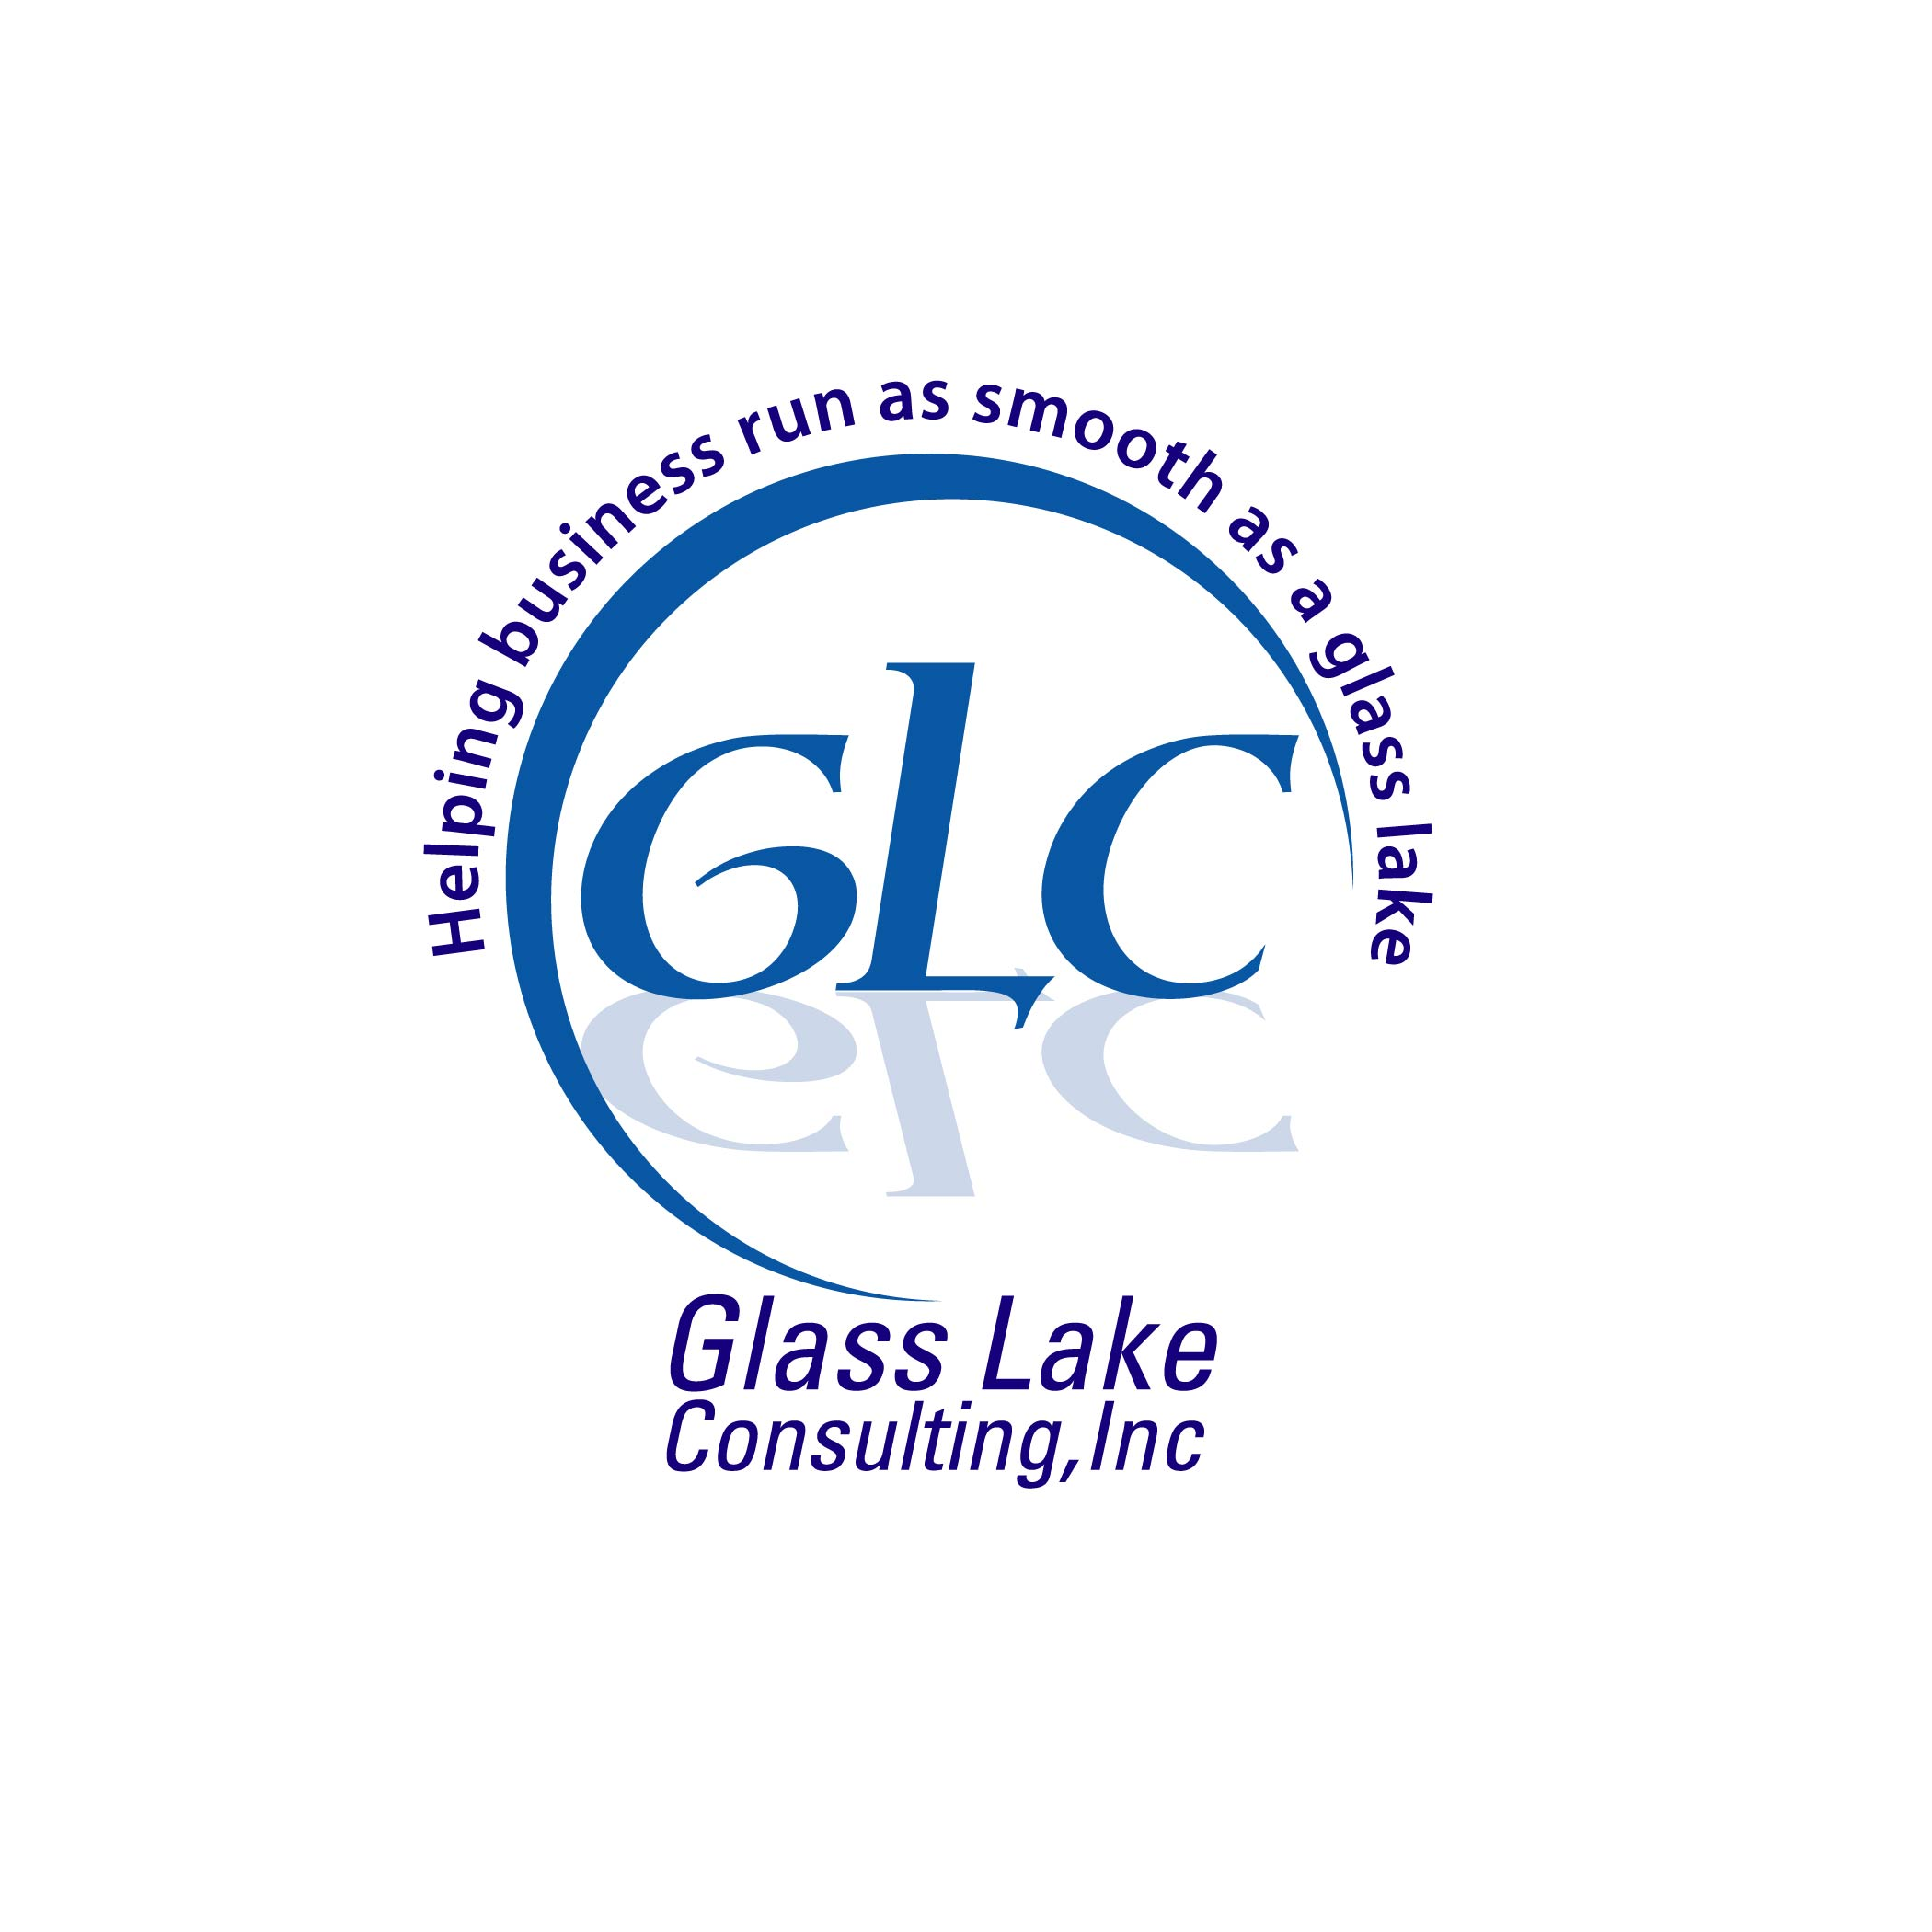 Glass Lake Consulting, Inc.